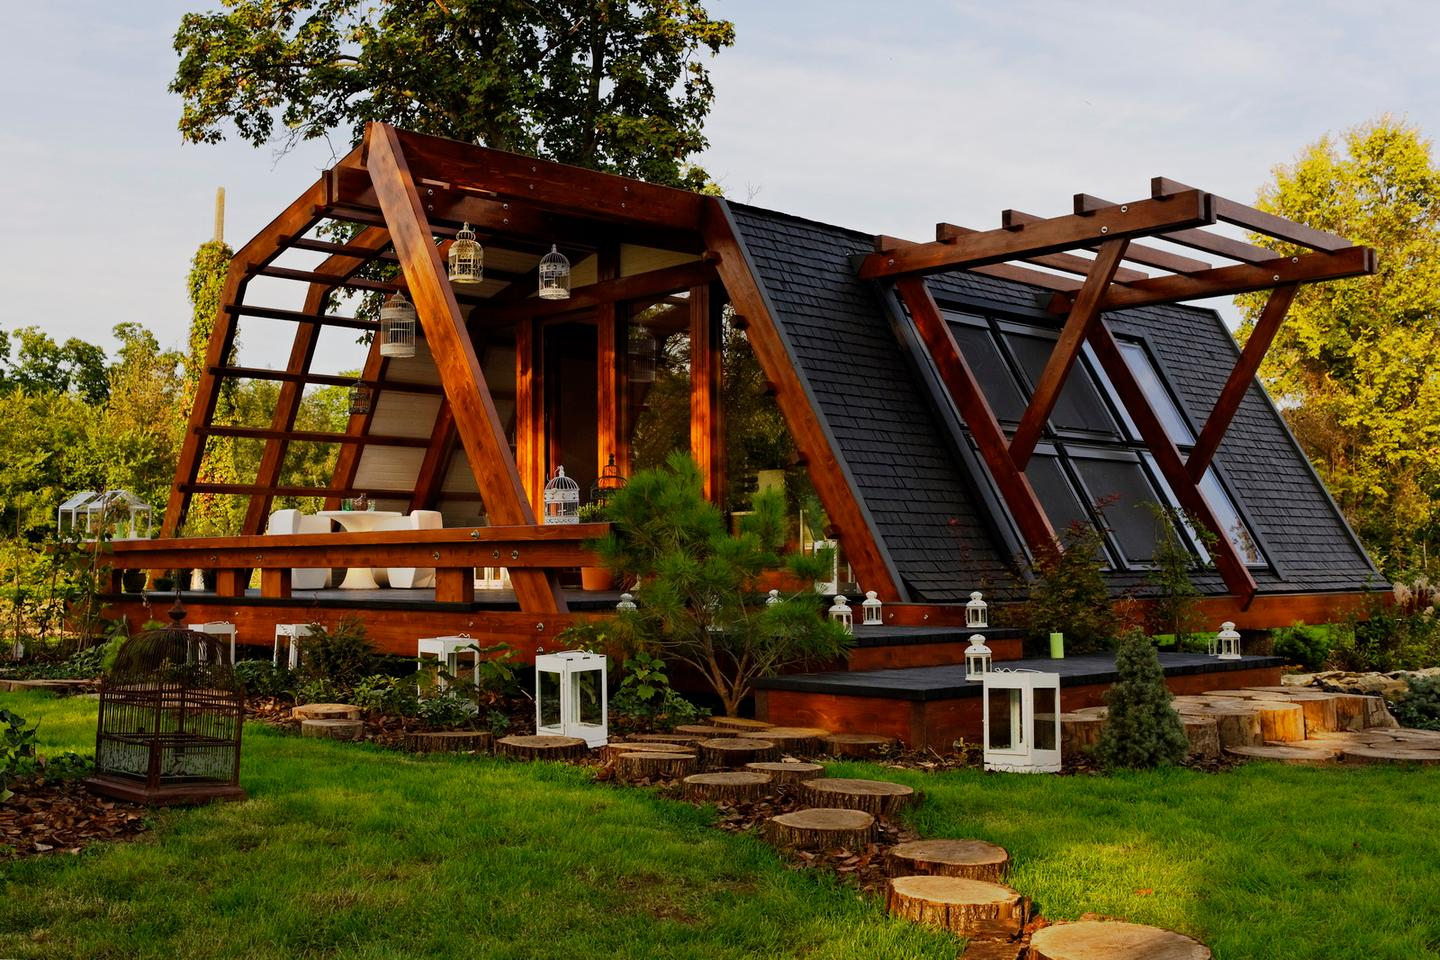 The homes were created by Romanian non-profit green-tech firm Justin Capra Foundation for Sustainable Technologies and Inventions